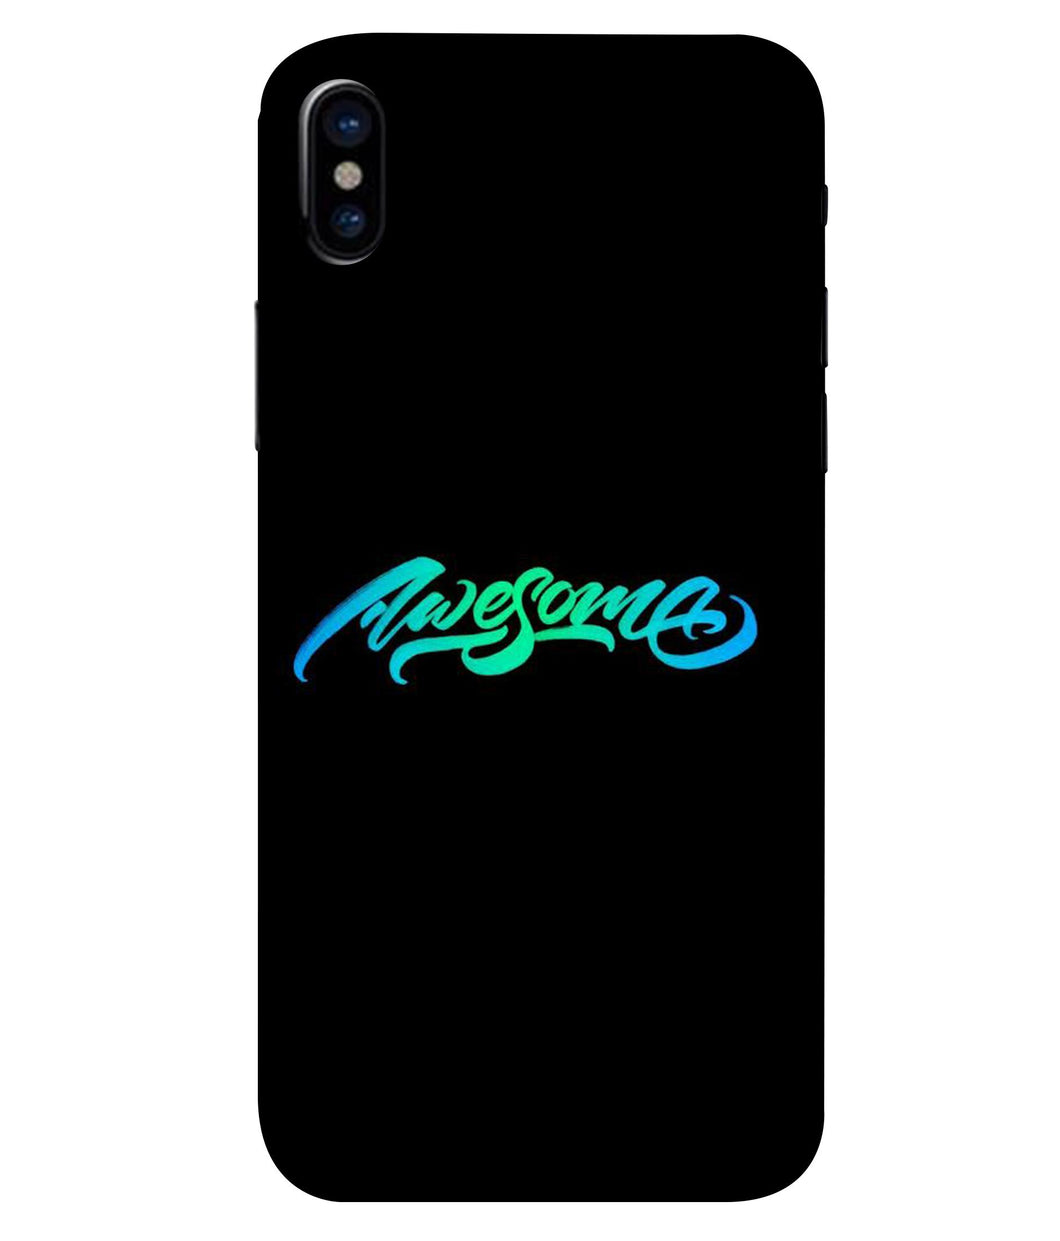 Apple Iphone X Awesome Mobile cover